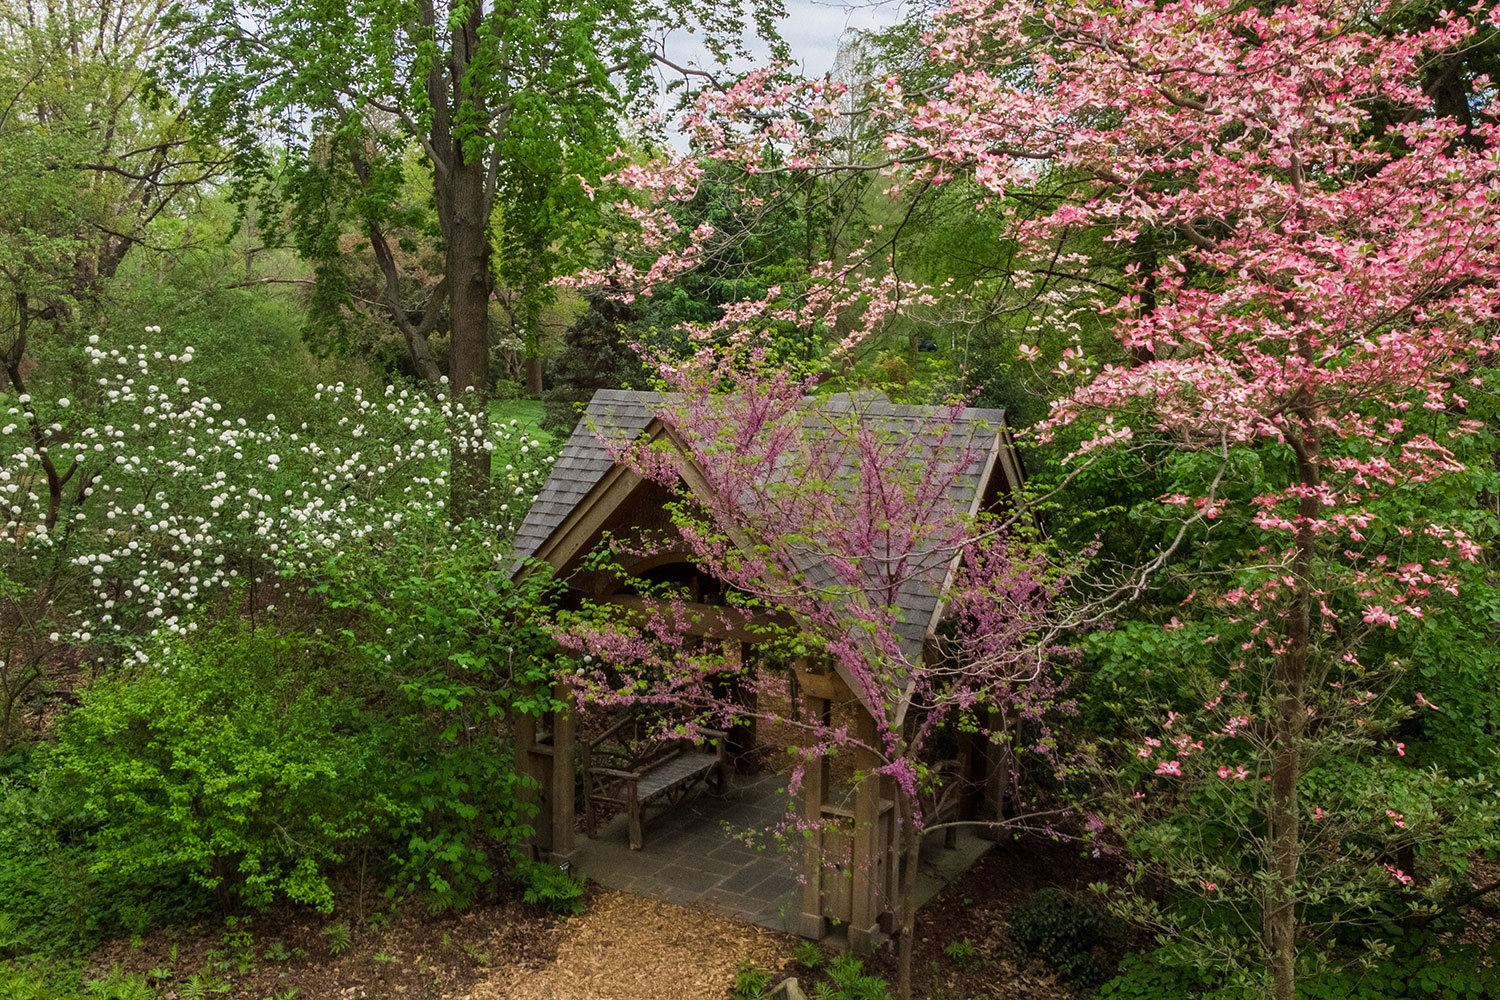 aerial view of English Woodland Garden gazebo surrounded by pink flowering dogwood blossoms